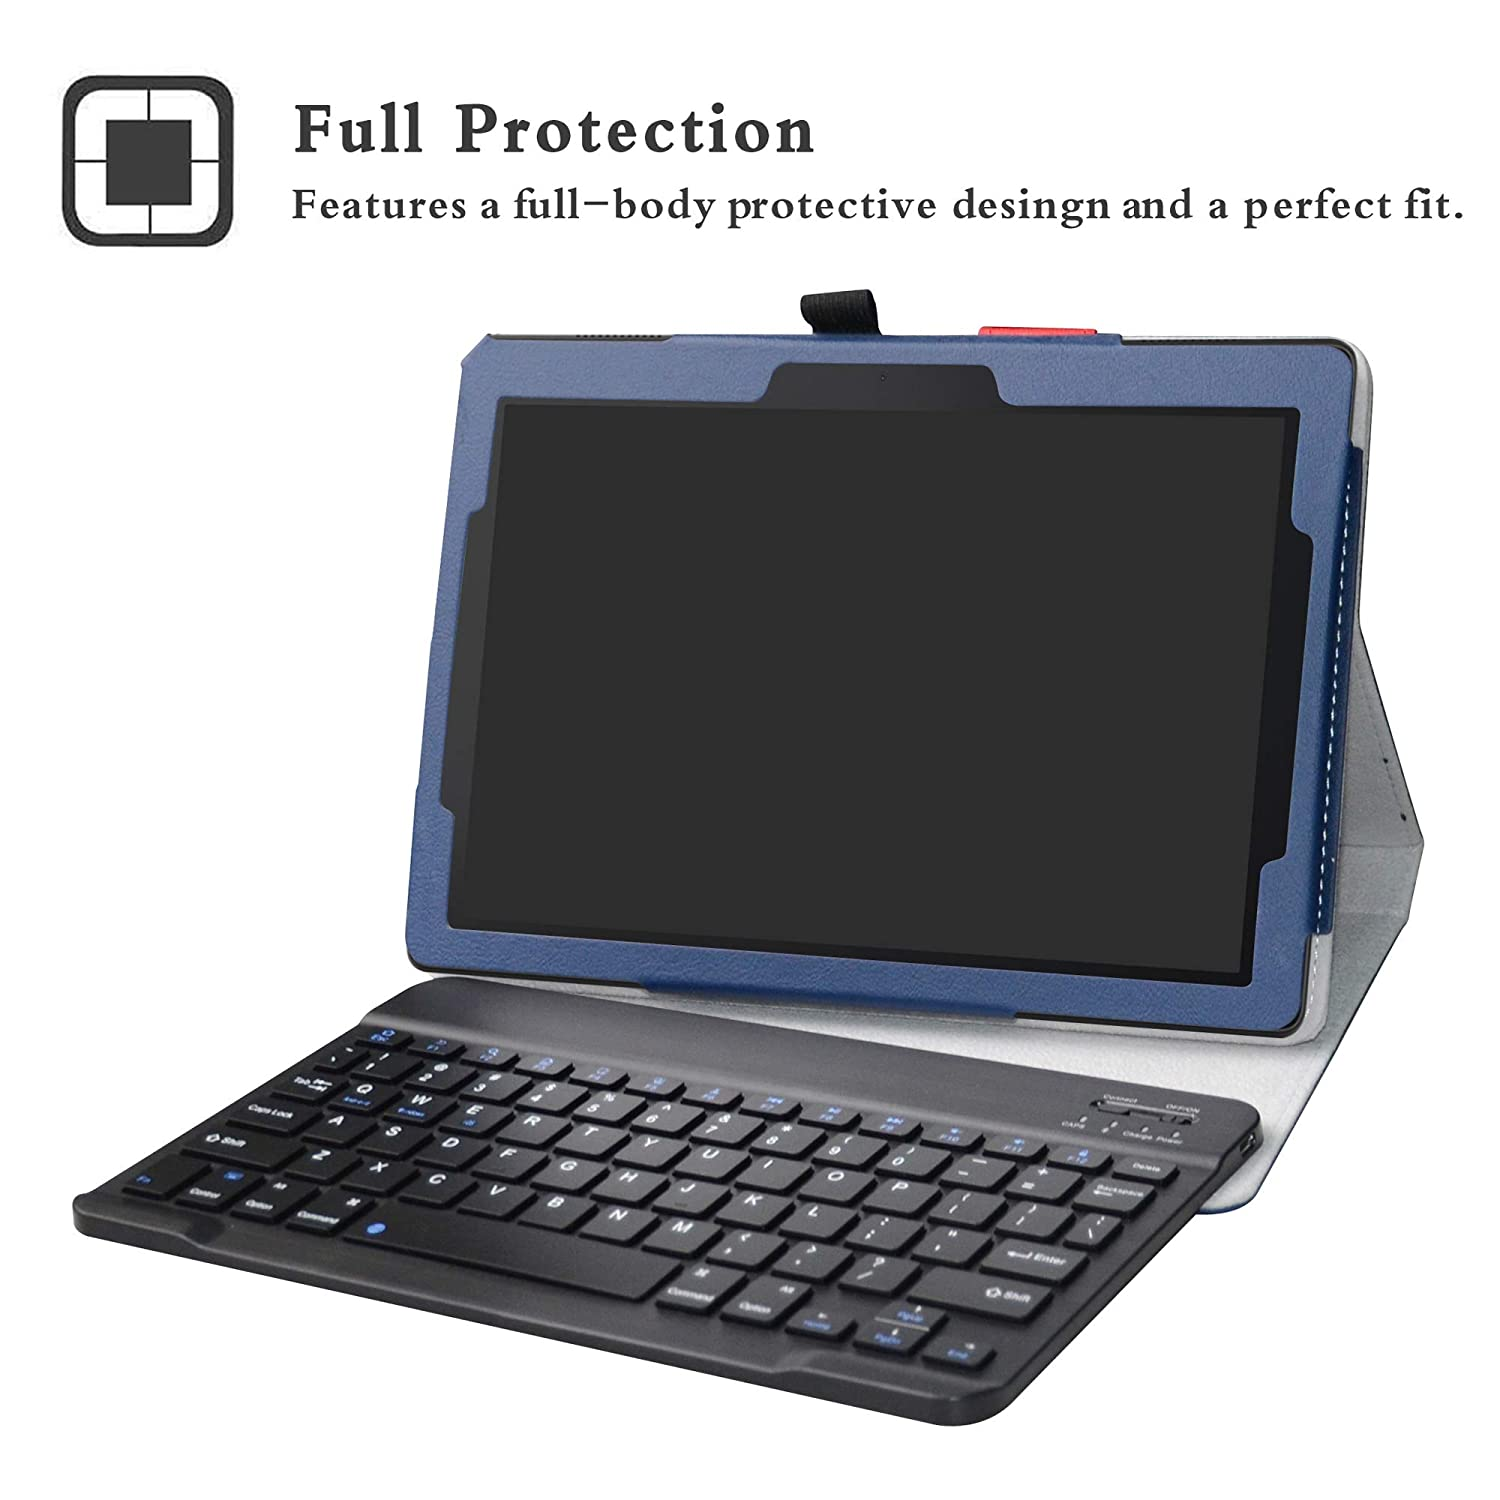 lowest price dfe68 7c8b0 Lenovo Tab E10 2018 Bluetooth Keyboard Case,LFDZ Slim Folio PU Leather  Stand Case Cover with Removable Magnetic Wireless Keyboard for 10.1